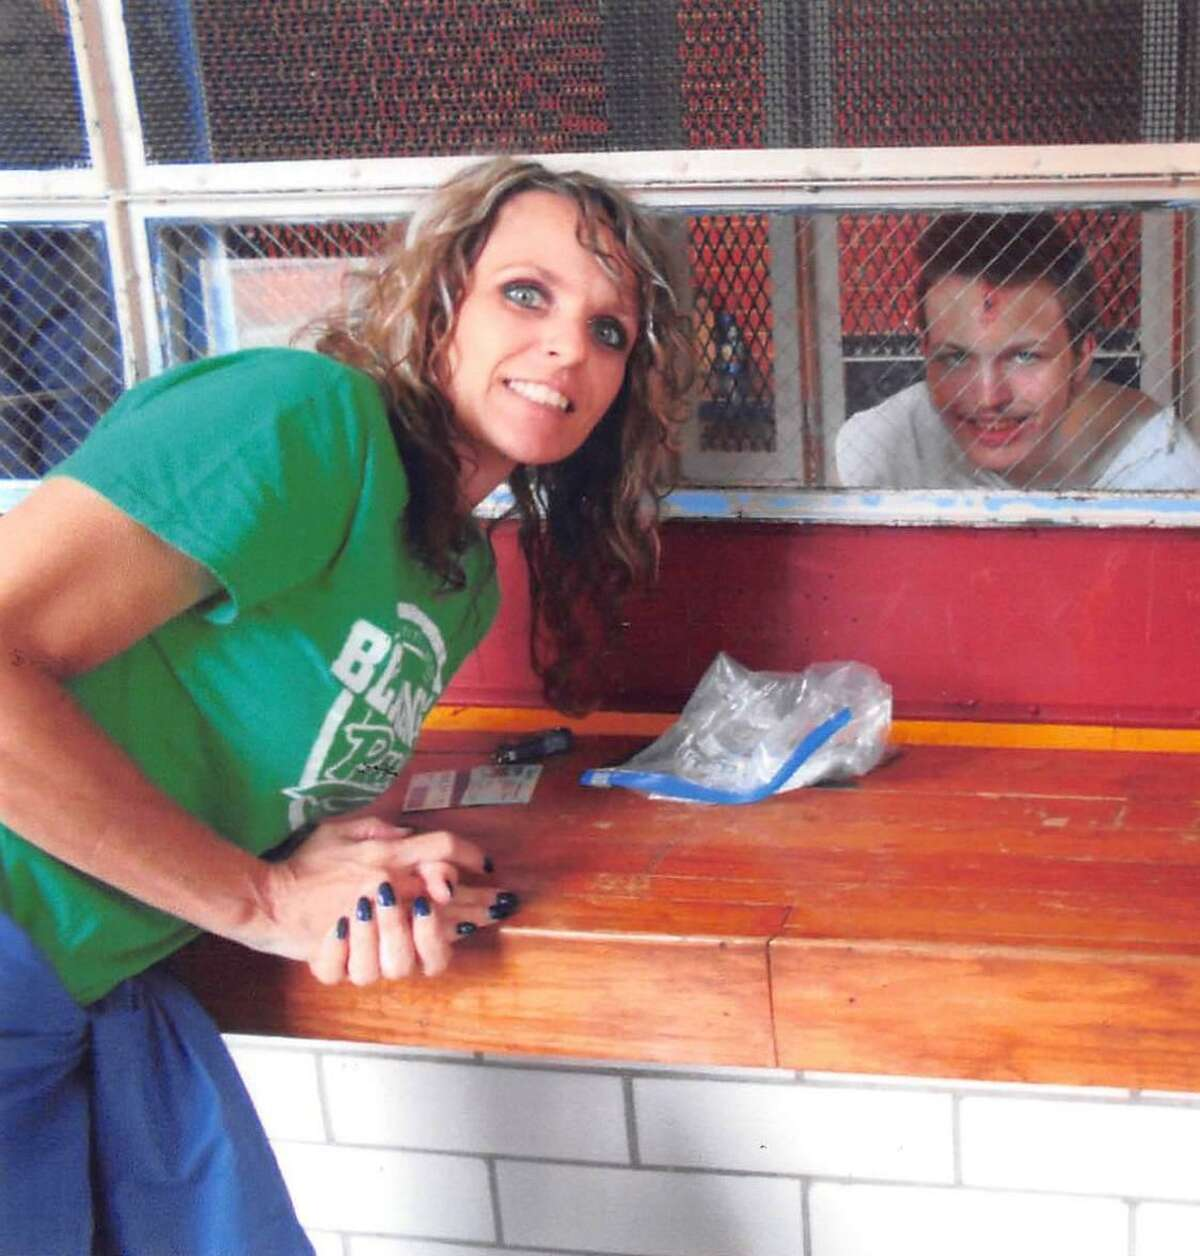 Keri Womack poses with her son Sawyer Letcher, who killed himself while locked up in a Texas prison.